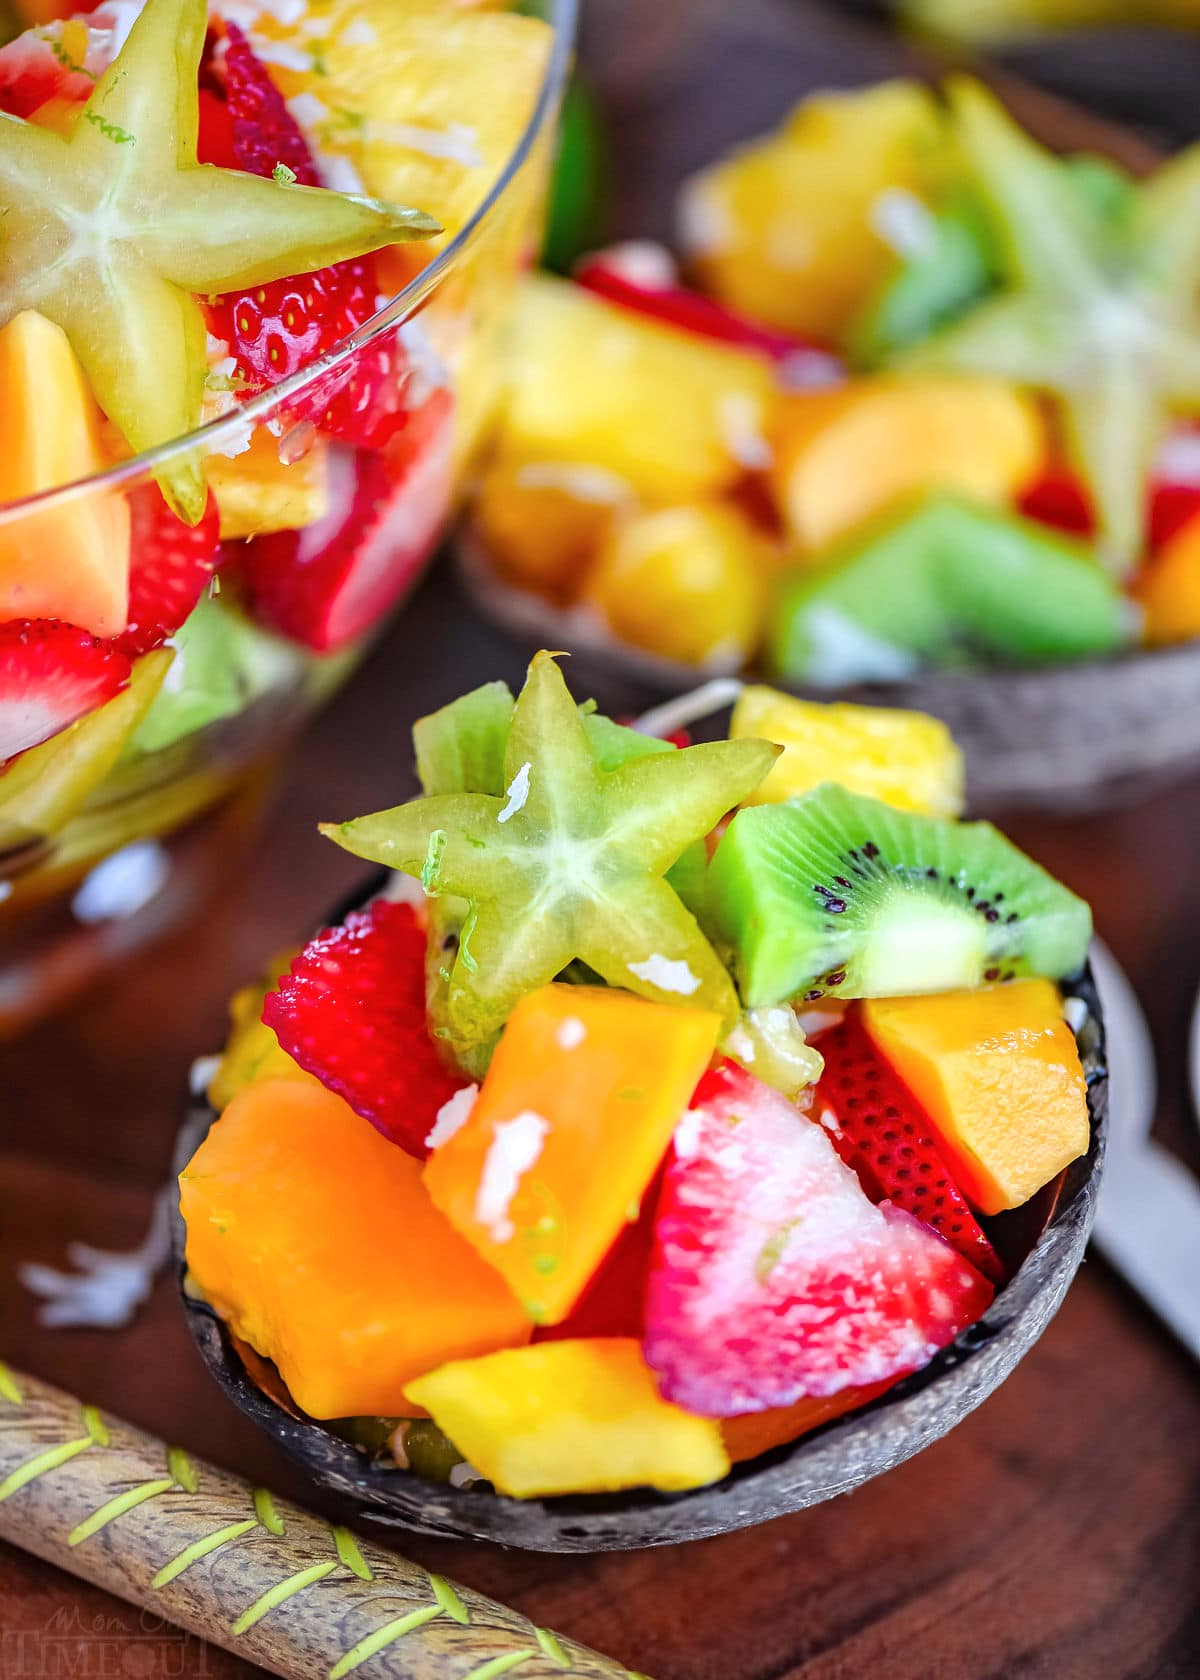 coconut half filled with tropical fruit salad. very brightly colored fruits.